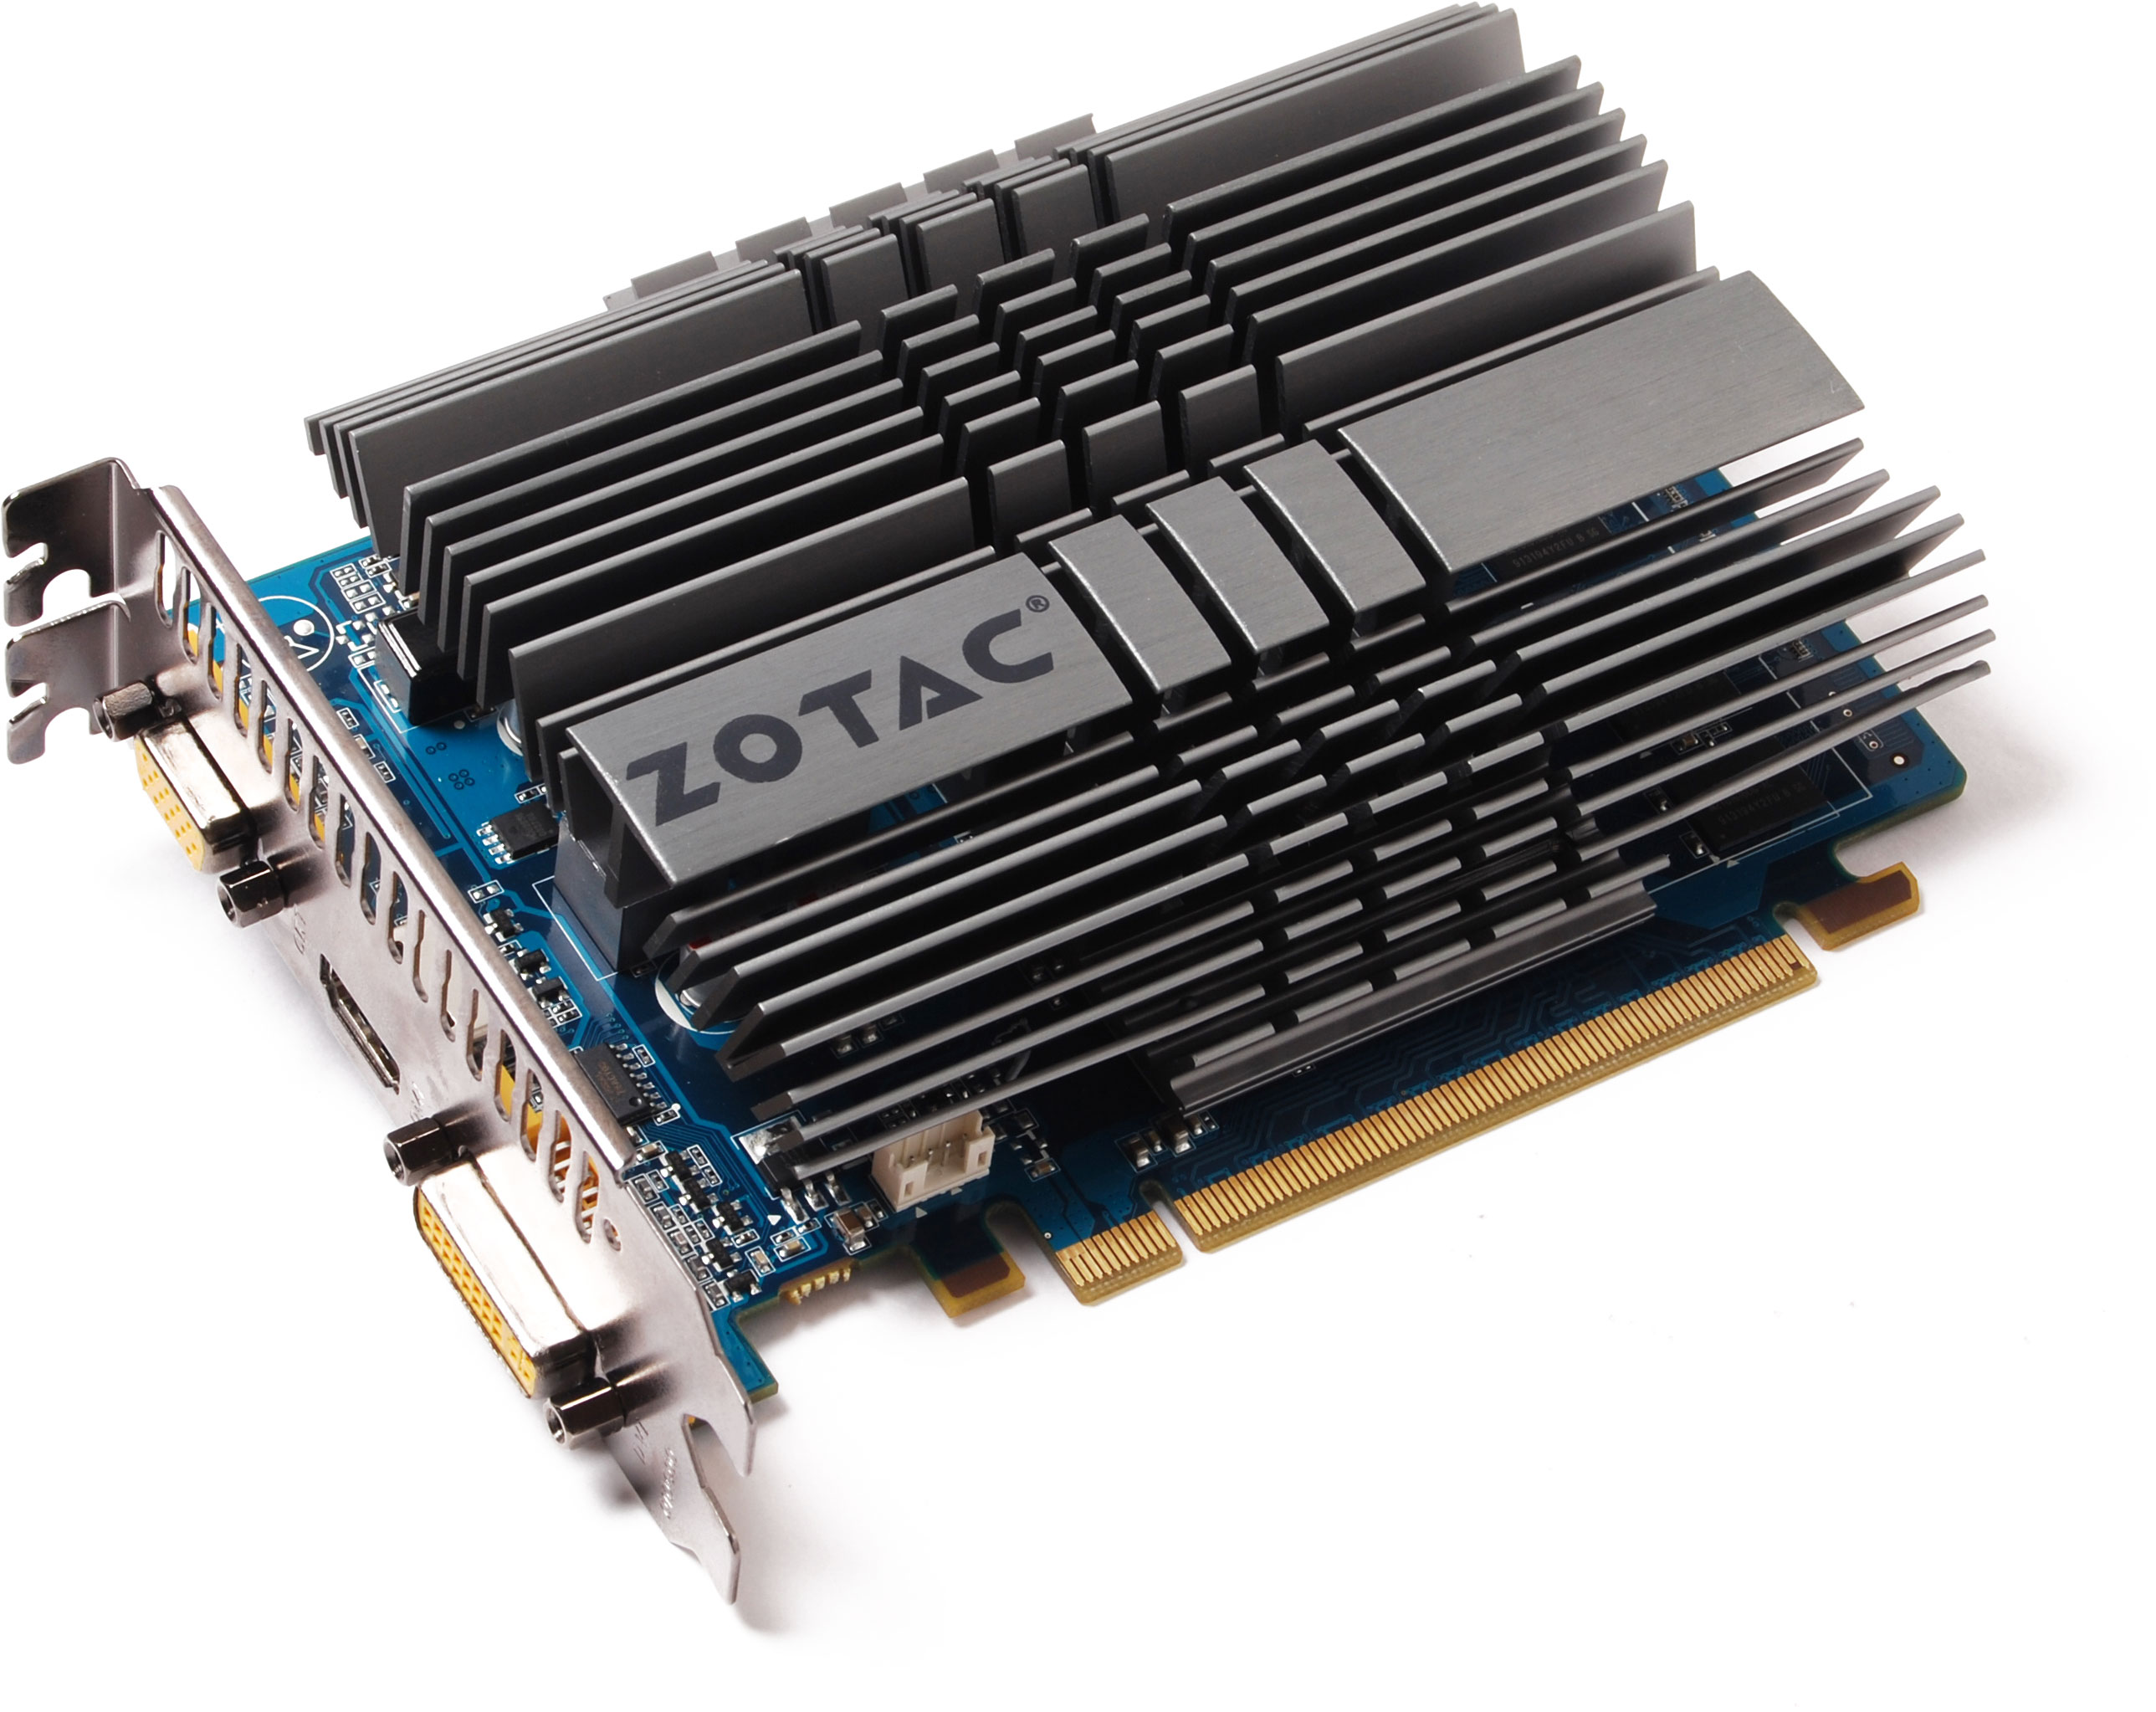 NVIDIA GeForce GT 220 graphics card: review, features and reviews 86